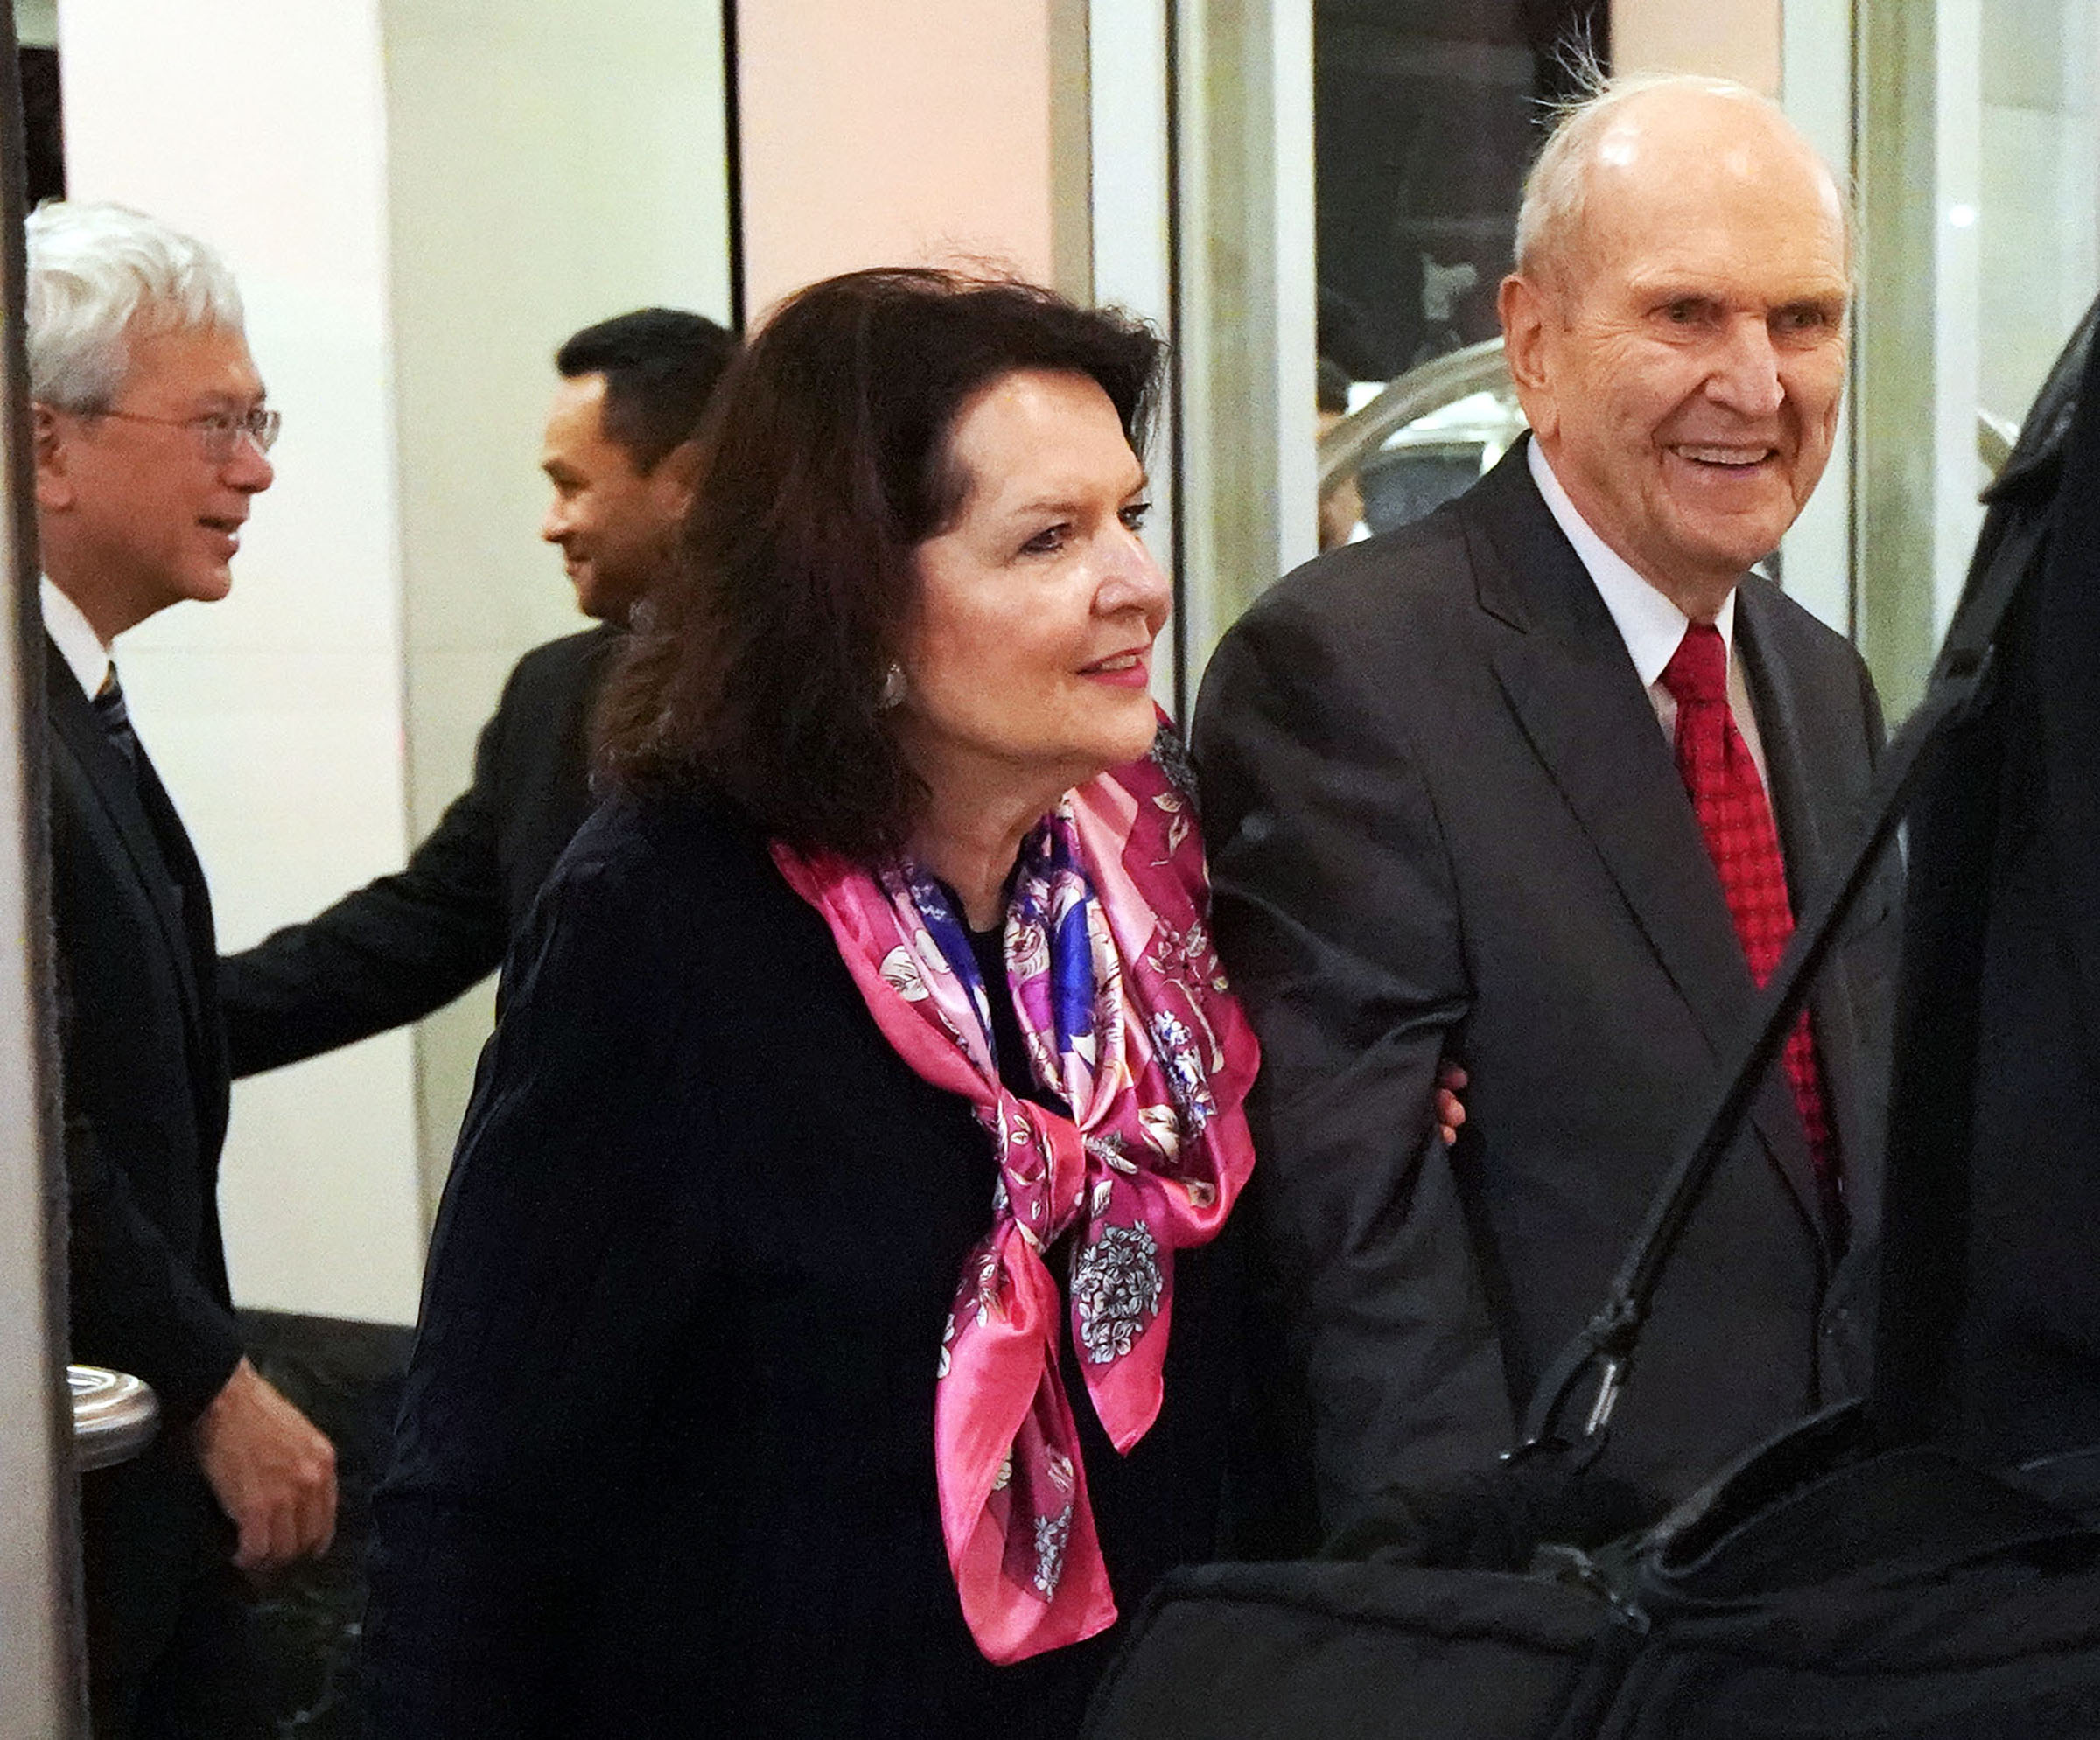 President Russell M. Nelson of The Church of Jesus Christ of Latter-day Saints, and his wife, Sister Wendy Nelson, arrive in Nuku'alofa, Tonga, on Wednesday, May 22, 2019.